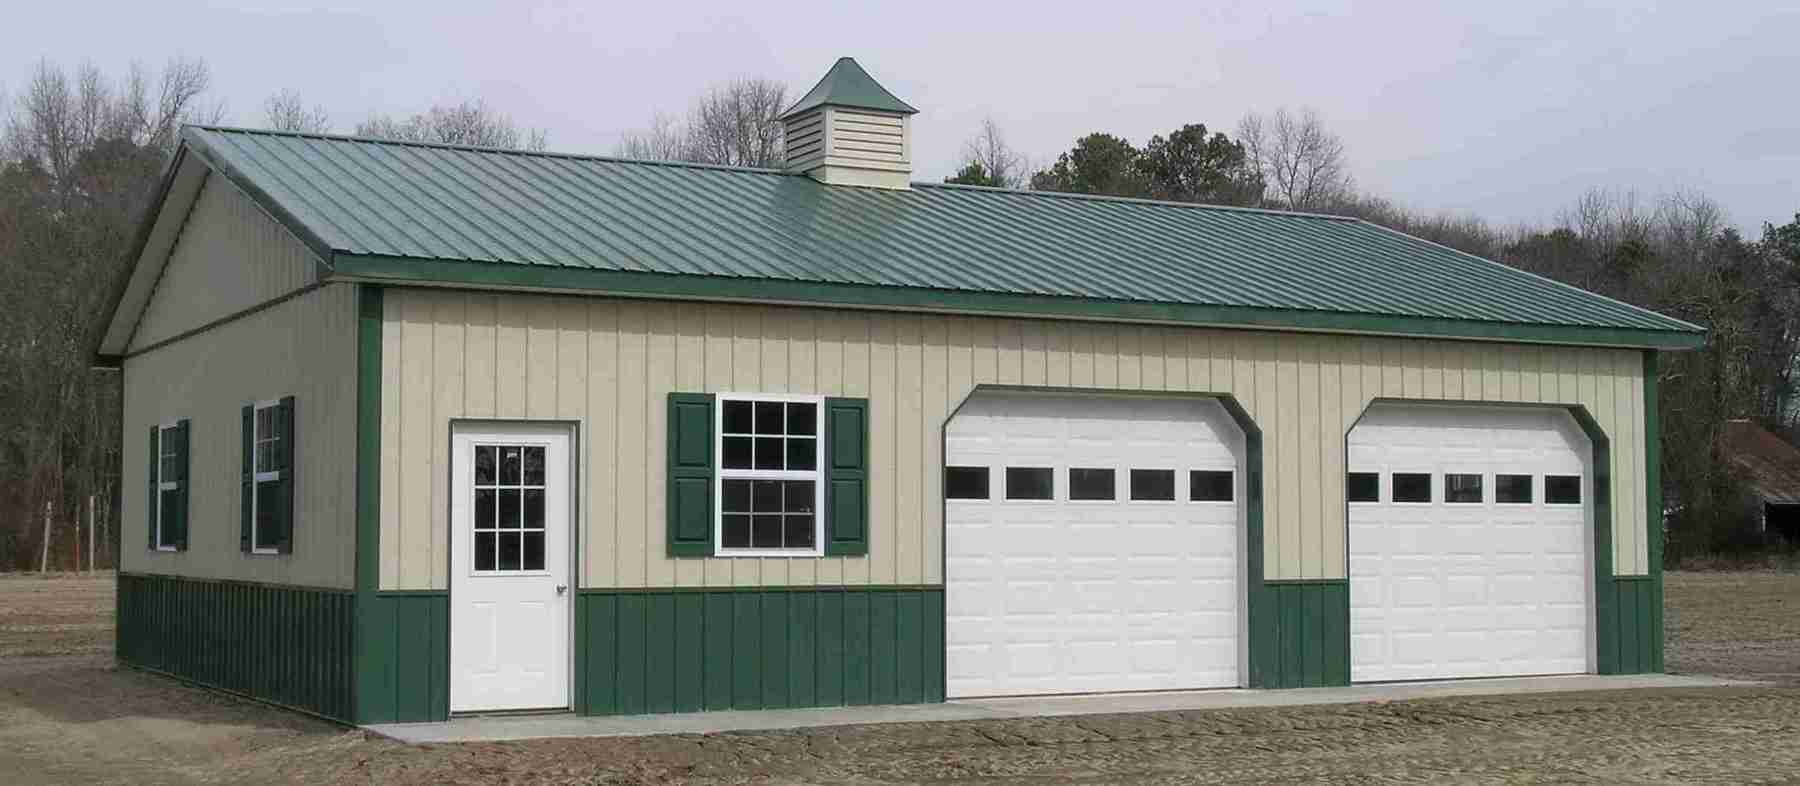 forum board mn journal garages barns barn showthread workshop the garage orono pole exterior